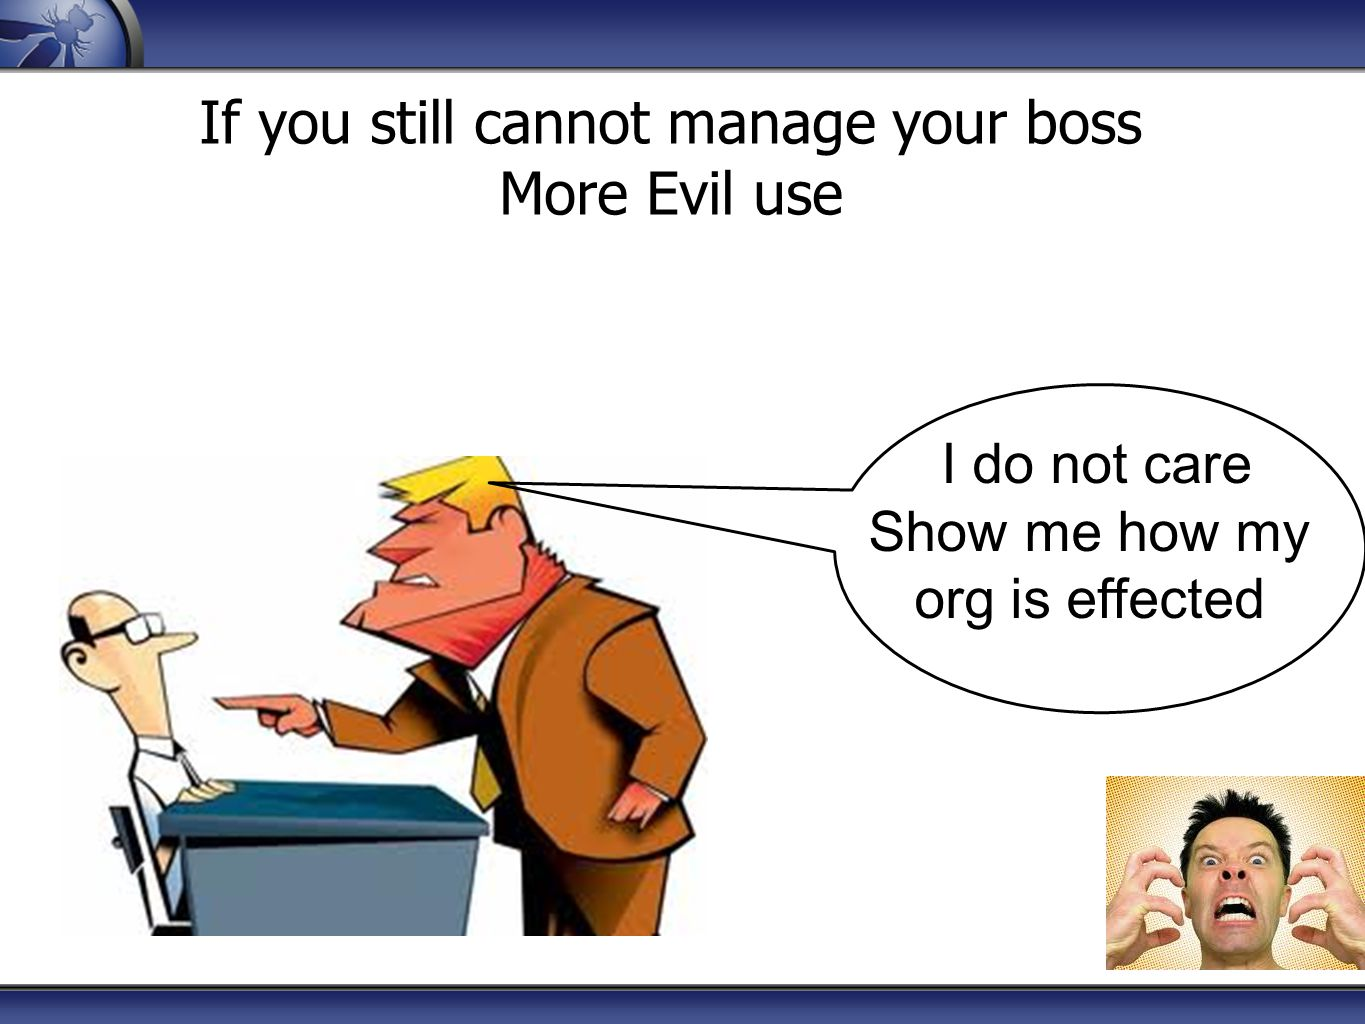 If you still cannot manage your boss More Evil use